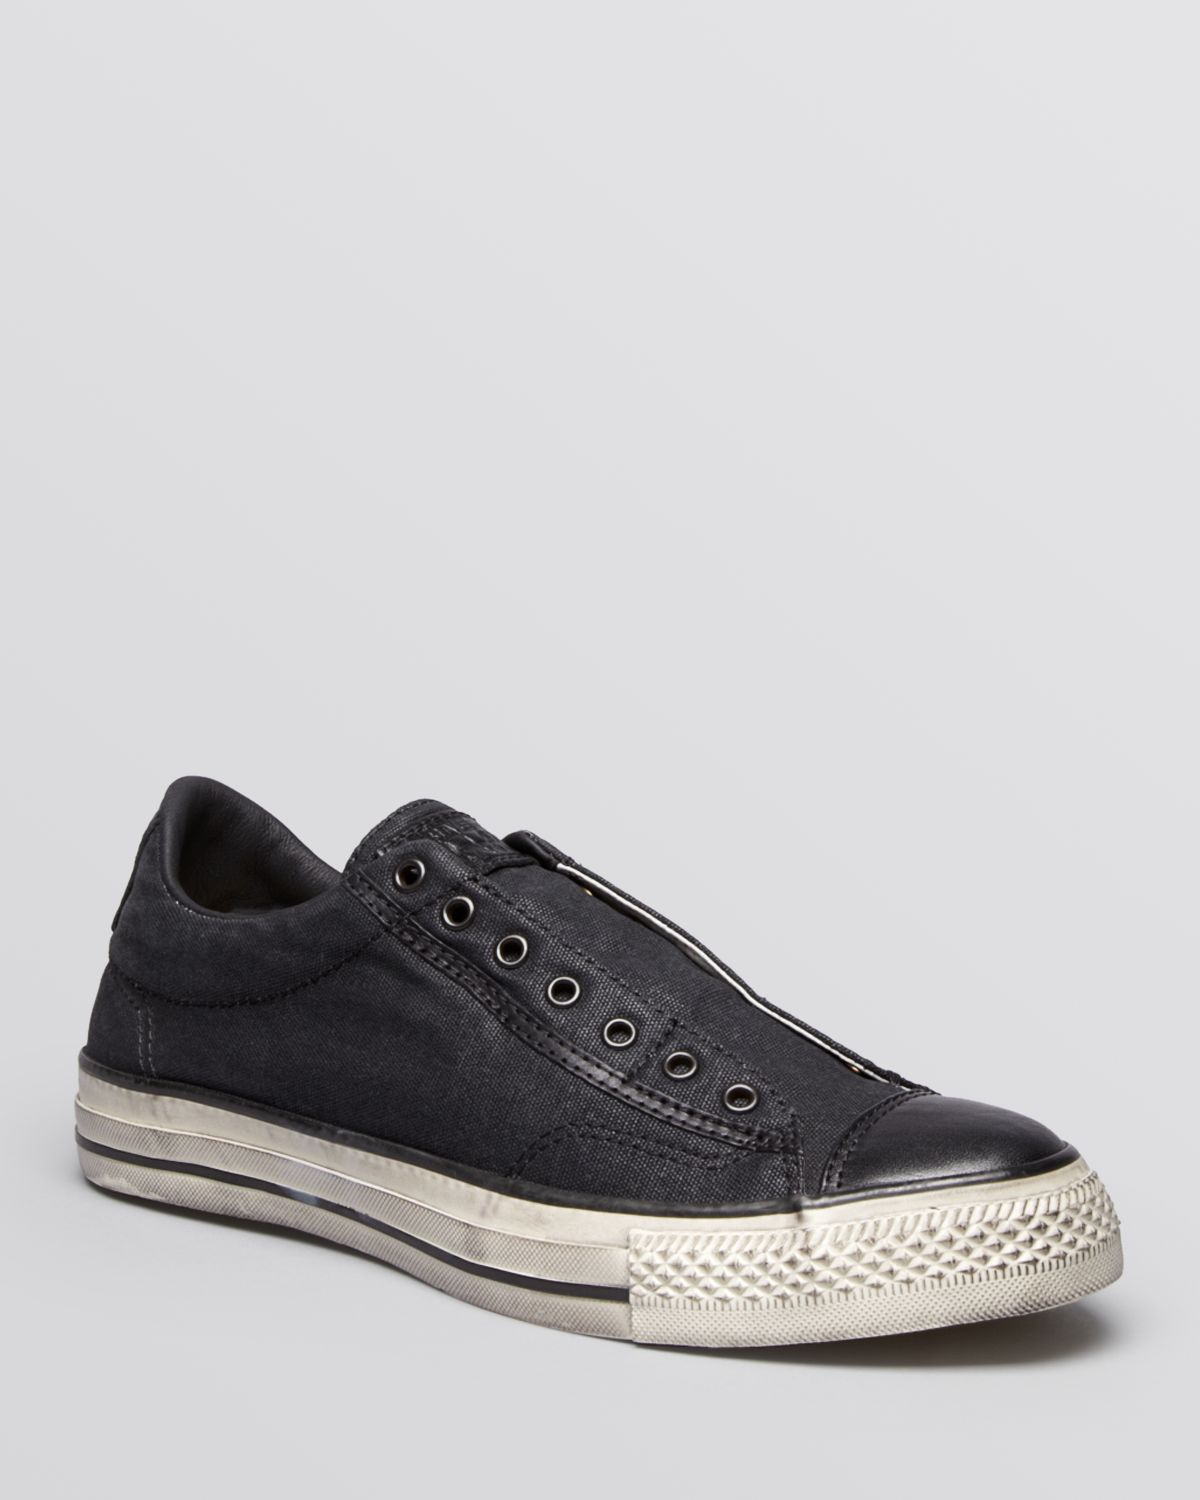 d2e61144498 Lyst - Converse By John Varvatos Chuck Taylor All Star Laceless ...